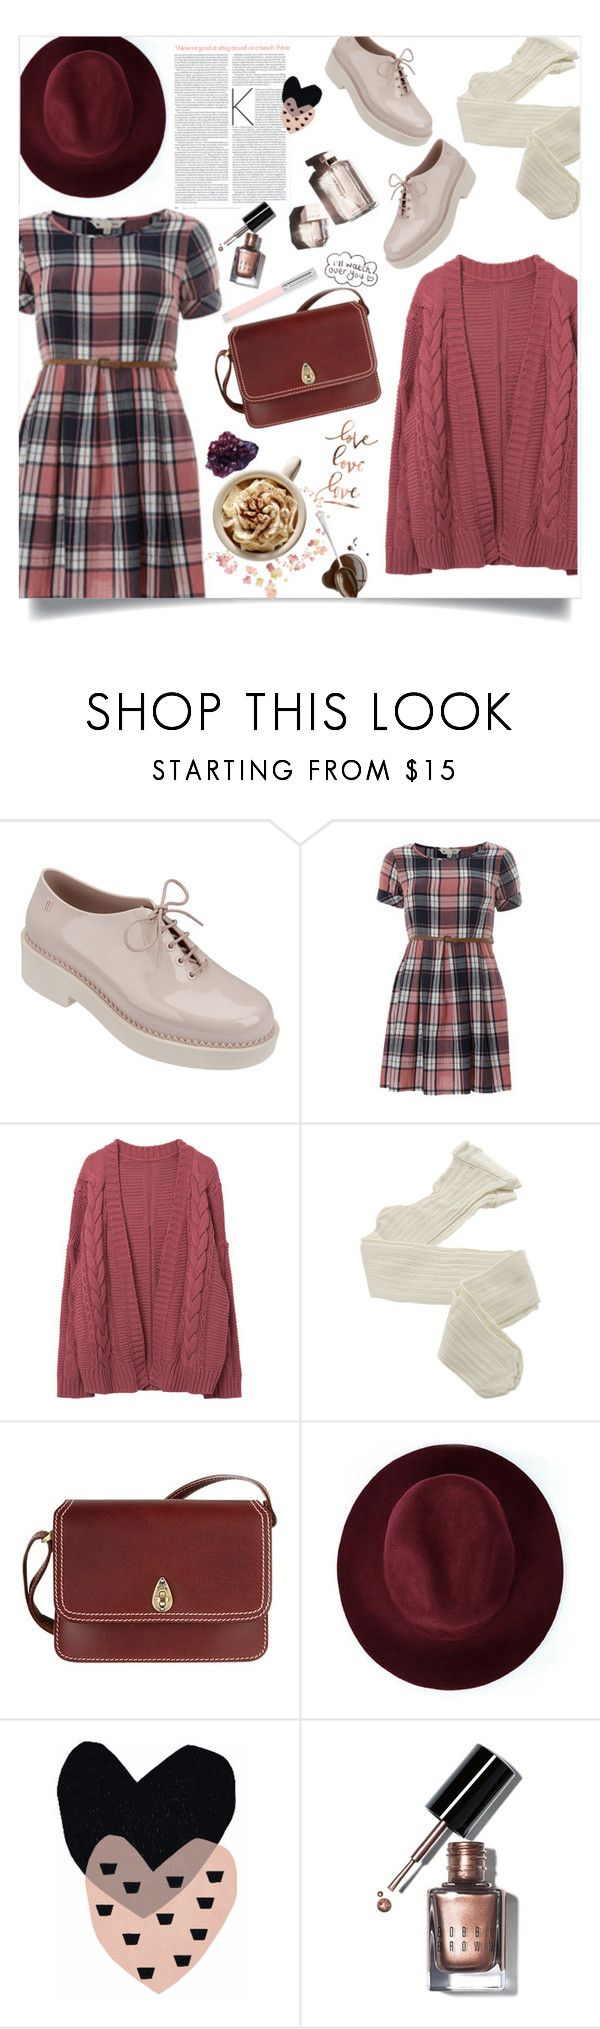 """""""plaid dress."""" by arwitaa on Polyvore featuring Melissa, Yumi, Garance Doré, Fogal, Tula, Redopin, Seventy Tree, DK, Bobbi Brown Cosmetics and Faber-Castell"""